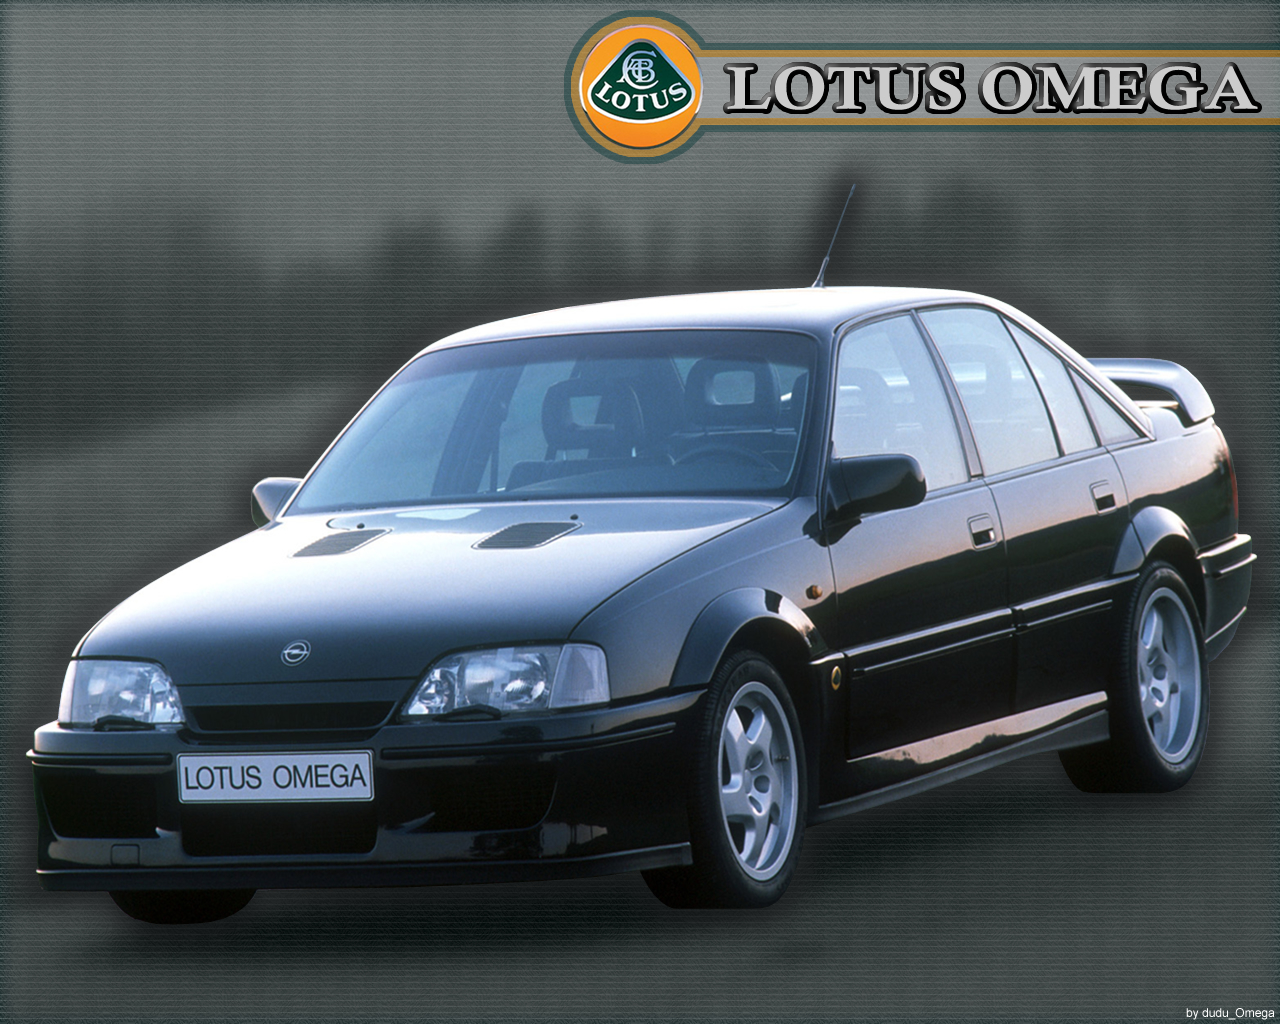 Opel Lotus Omega photo 04